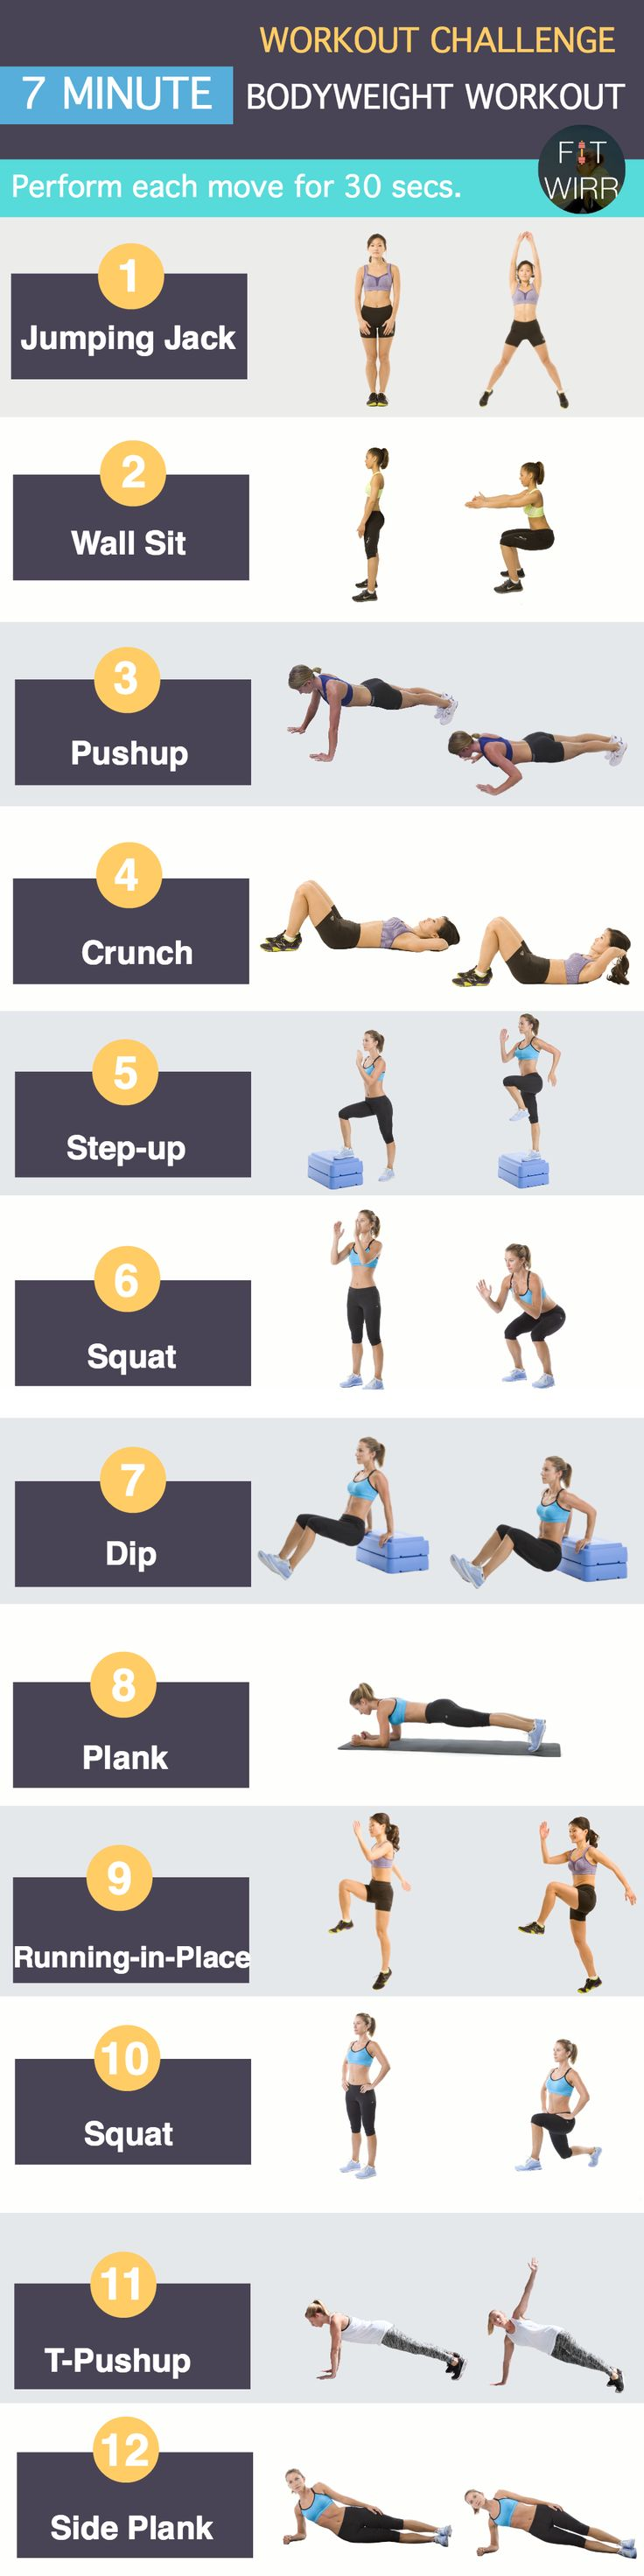 Seven Minute Bodyweight HIIT Workout. Transform yourself & Your life, get fit & healthy. Start your free month now!!! Cancel anytime. #fitspo #fitspiration #motivation #inspiration #fitness #exercise #workout #health #weightloss